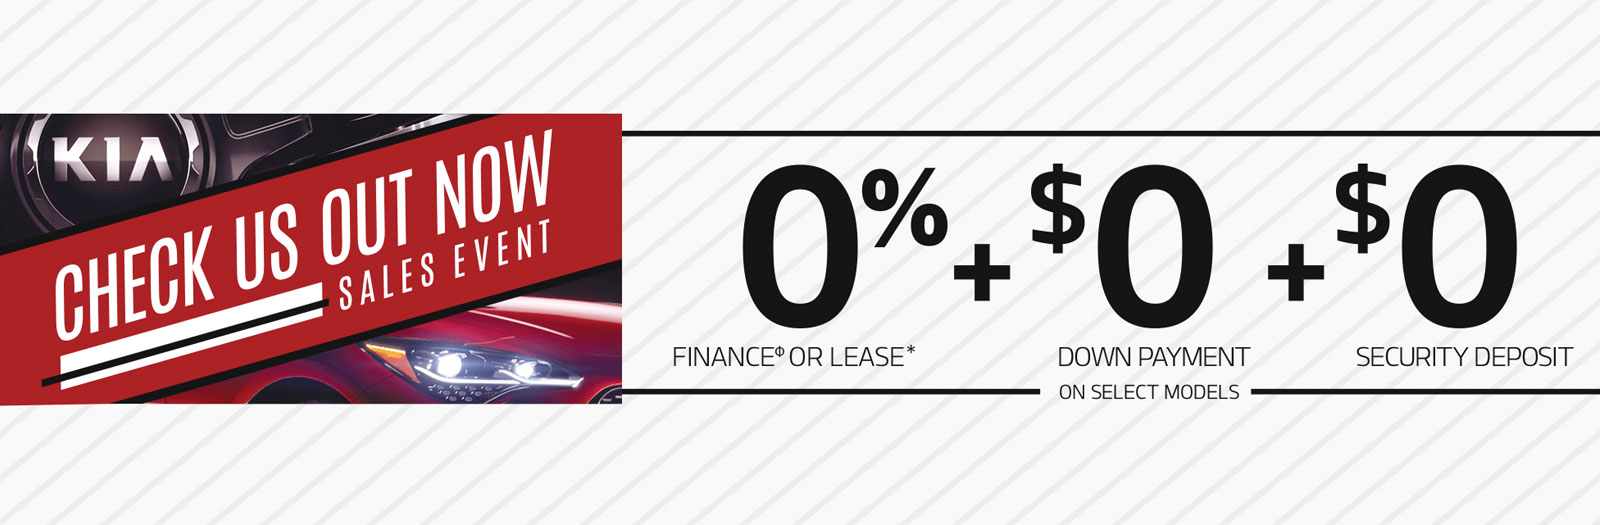 Check Us Out Now Sales Event Peterborough Kia